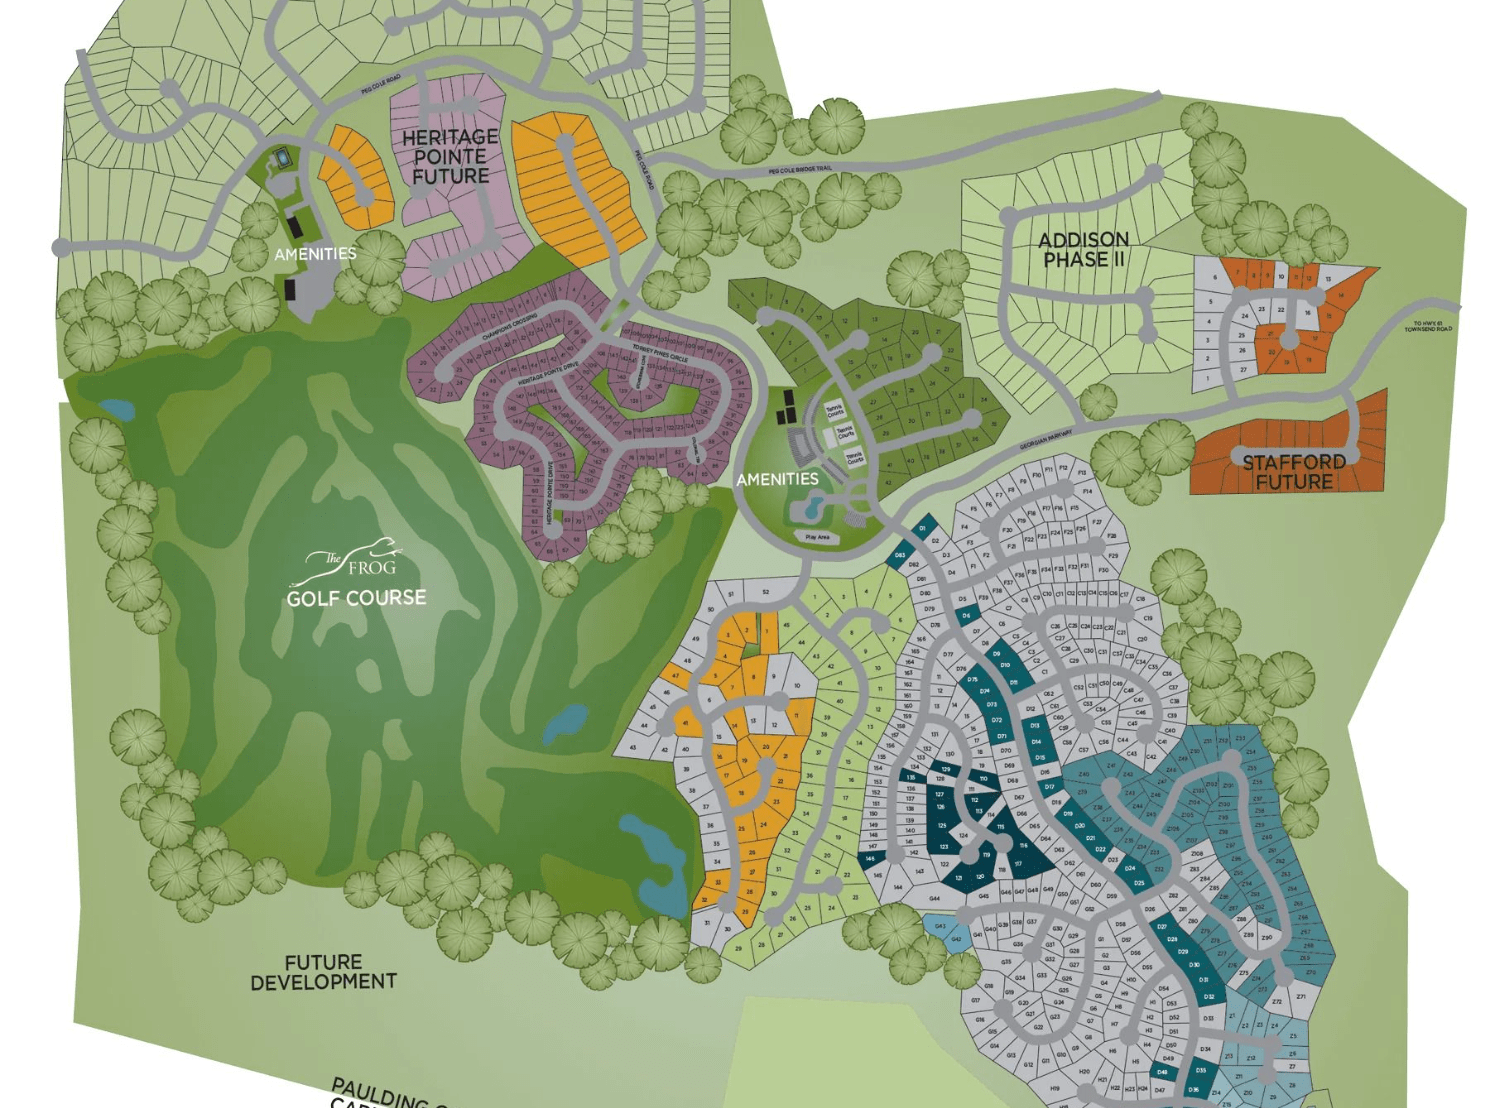 a map of the site plan for The Georgian